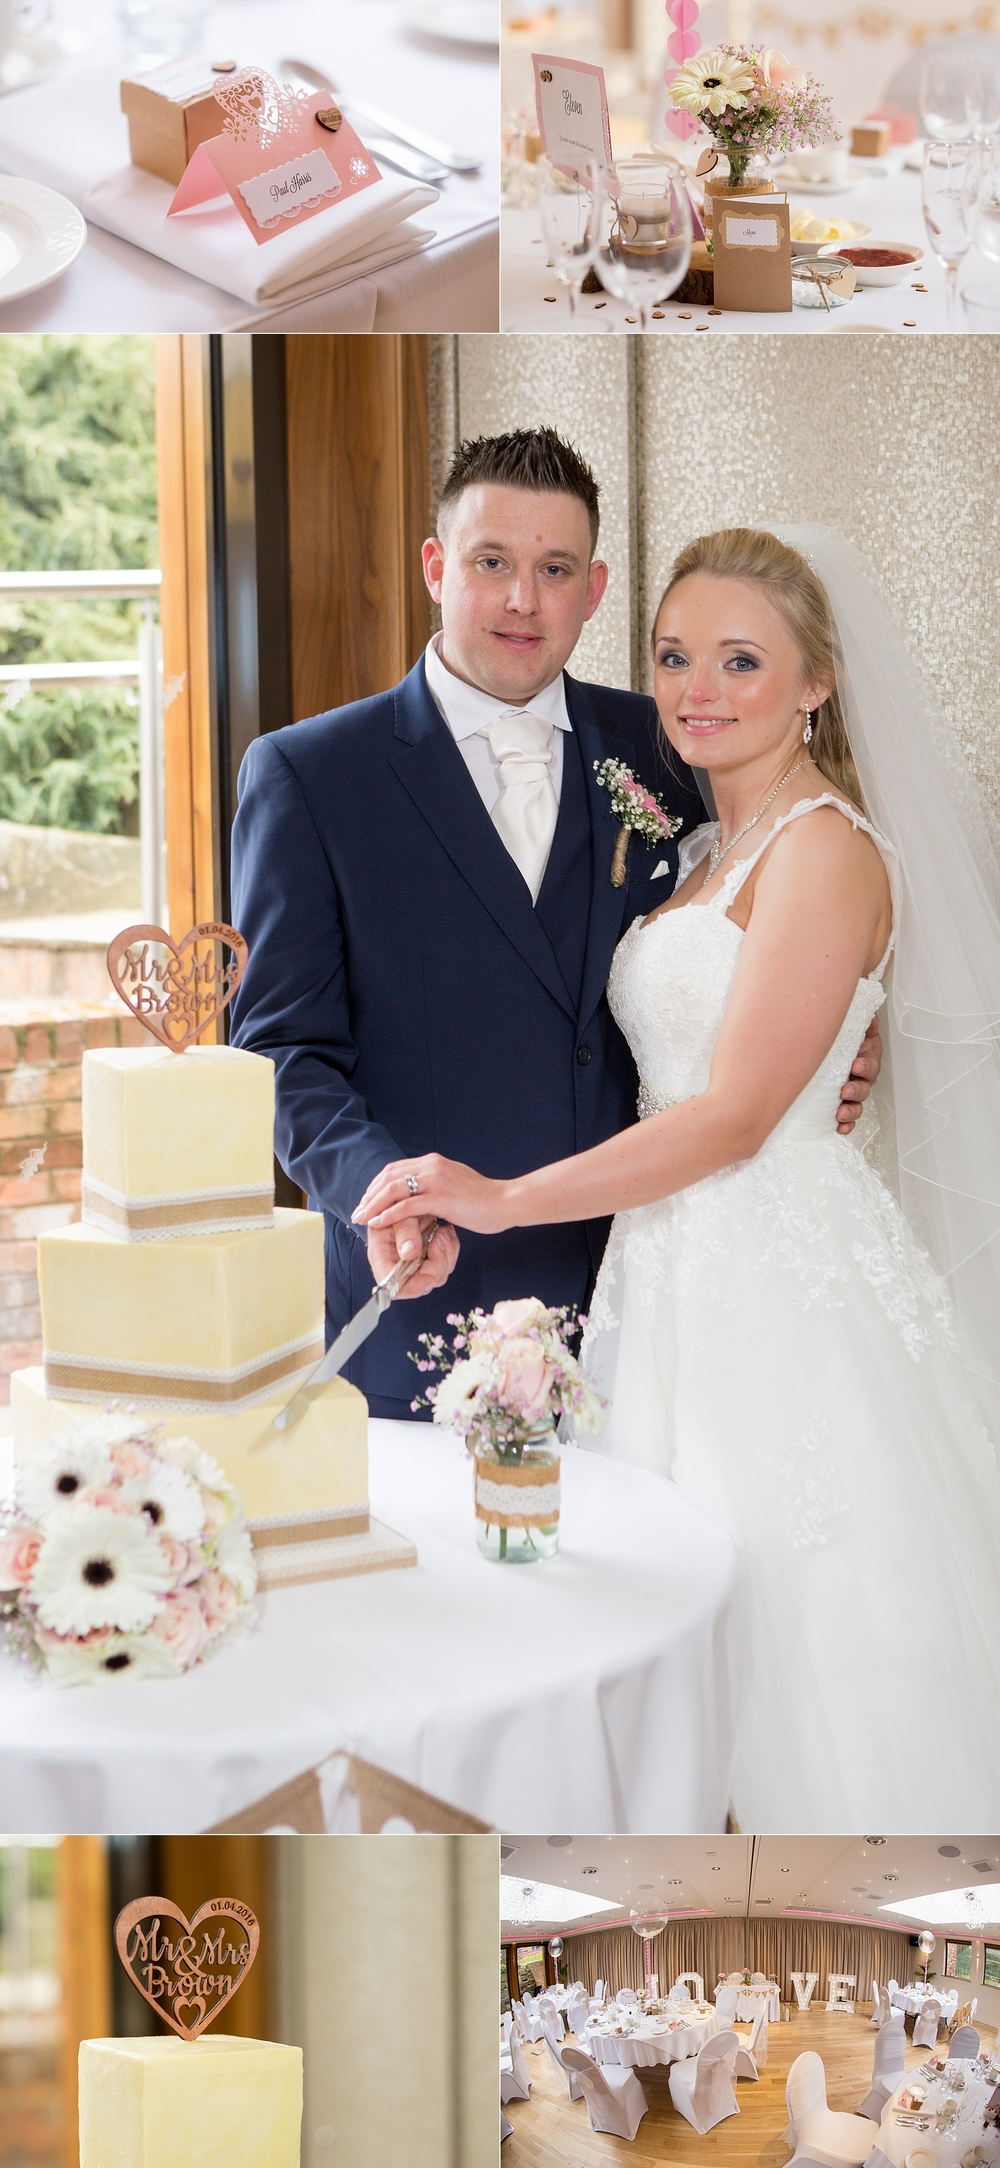 wedding photographer moddershall oaks stoke on trent 13.jpg